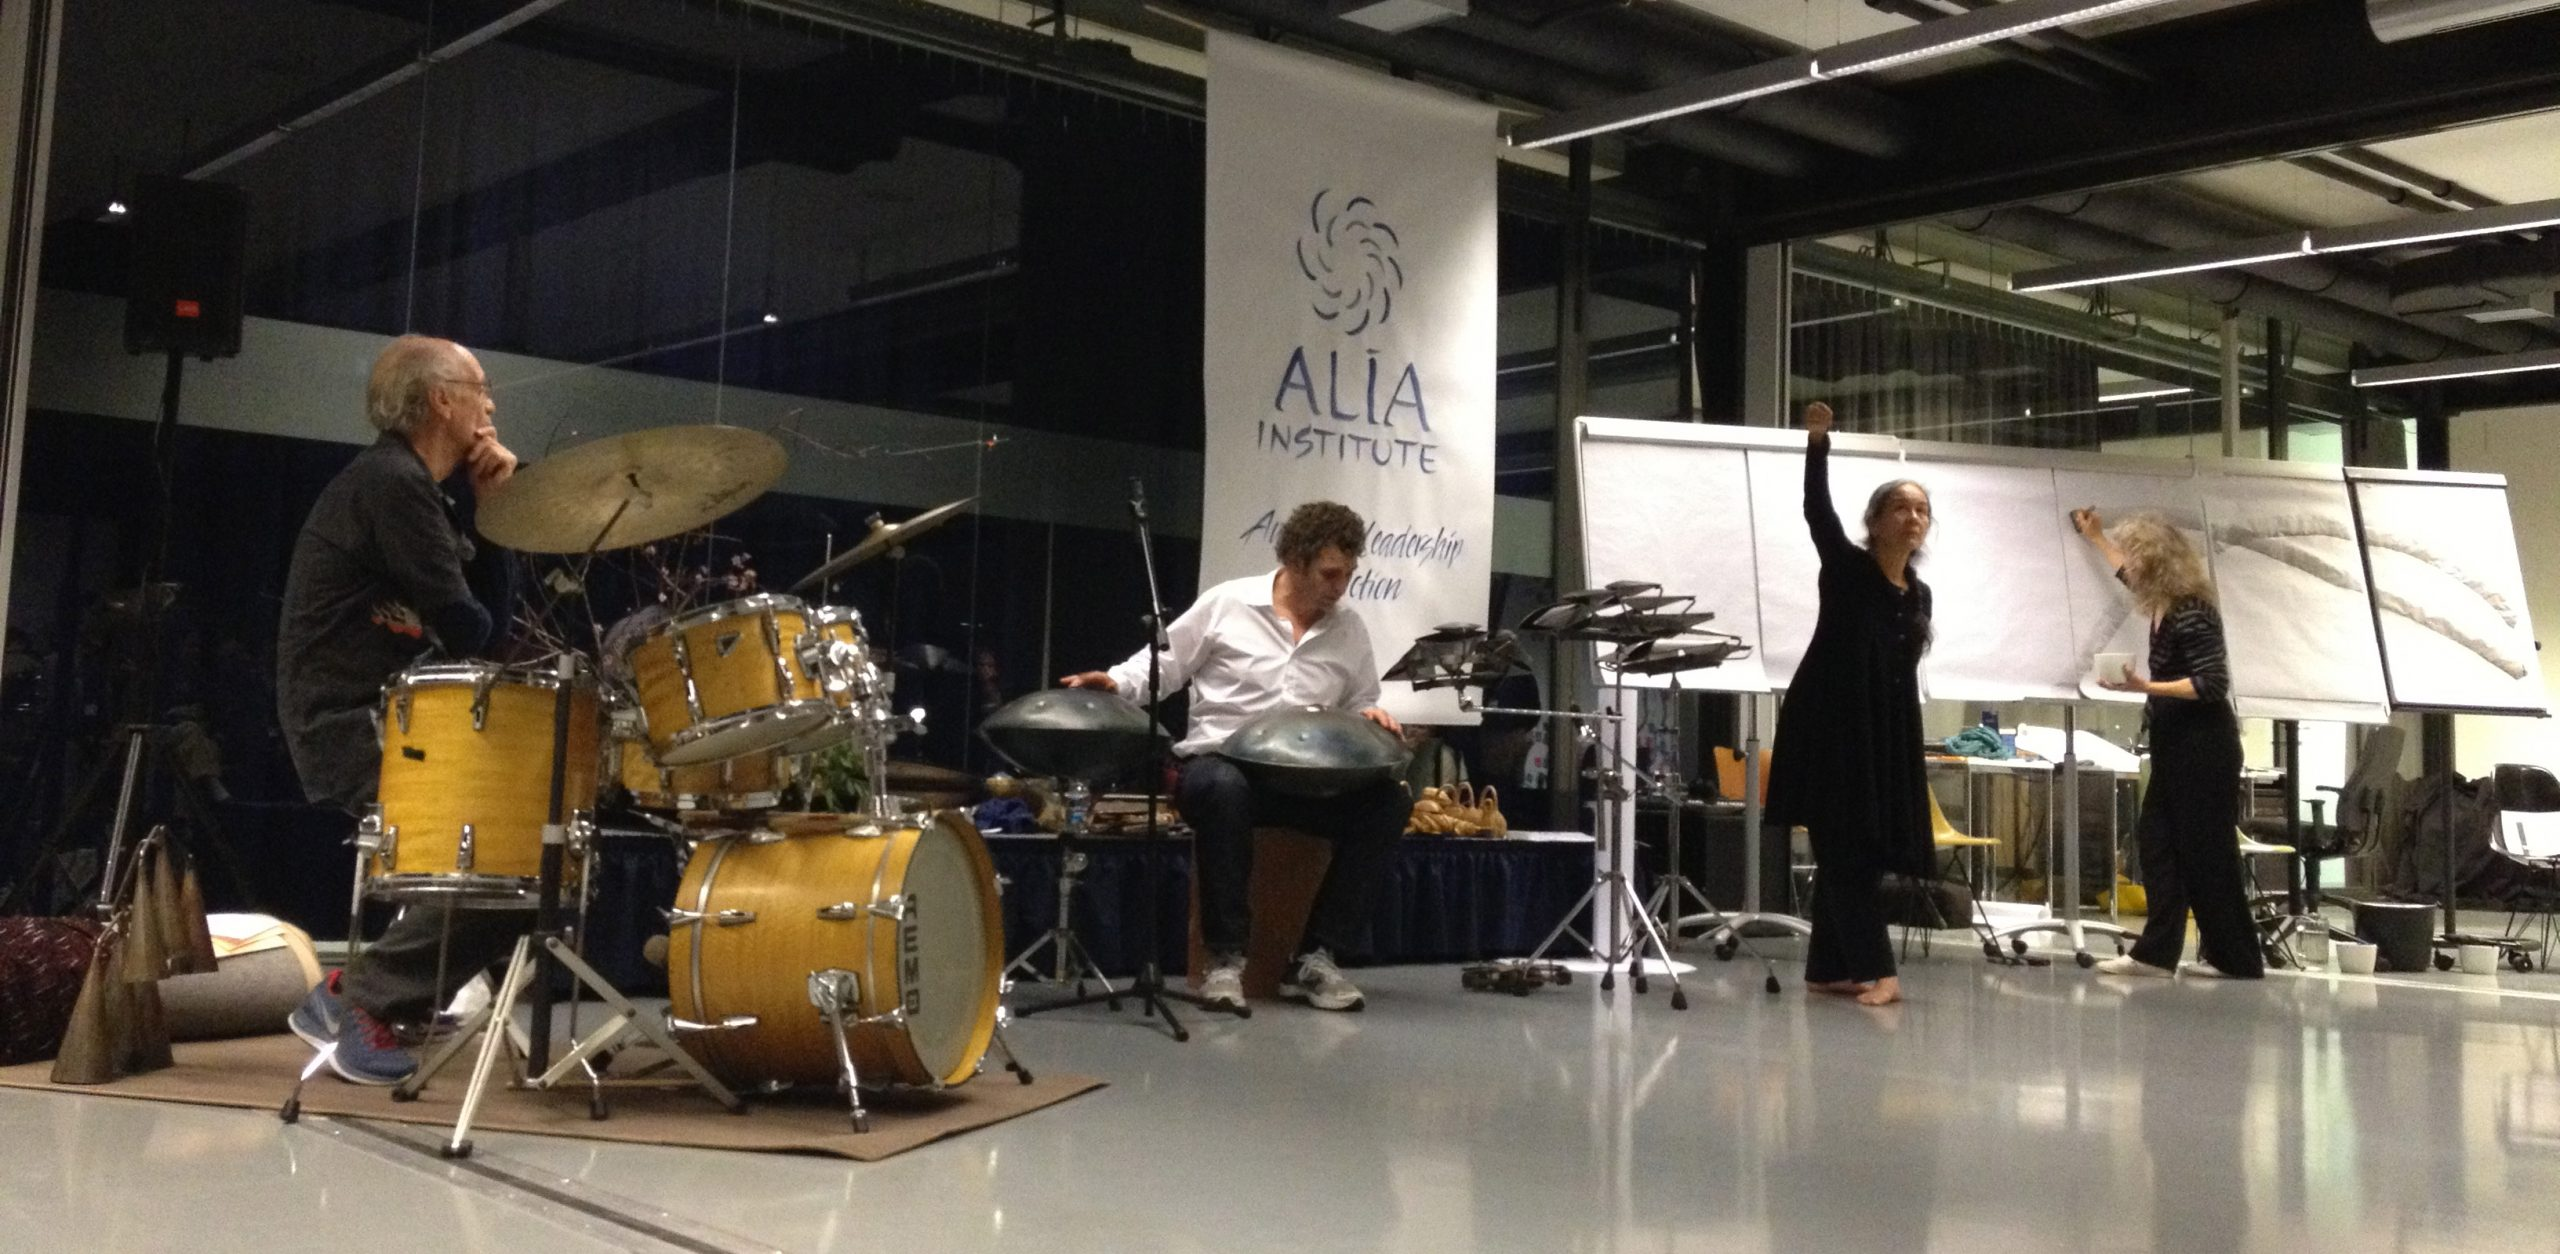 Wonderful Presencing track with Arawana at ALIA 2013